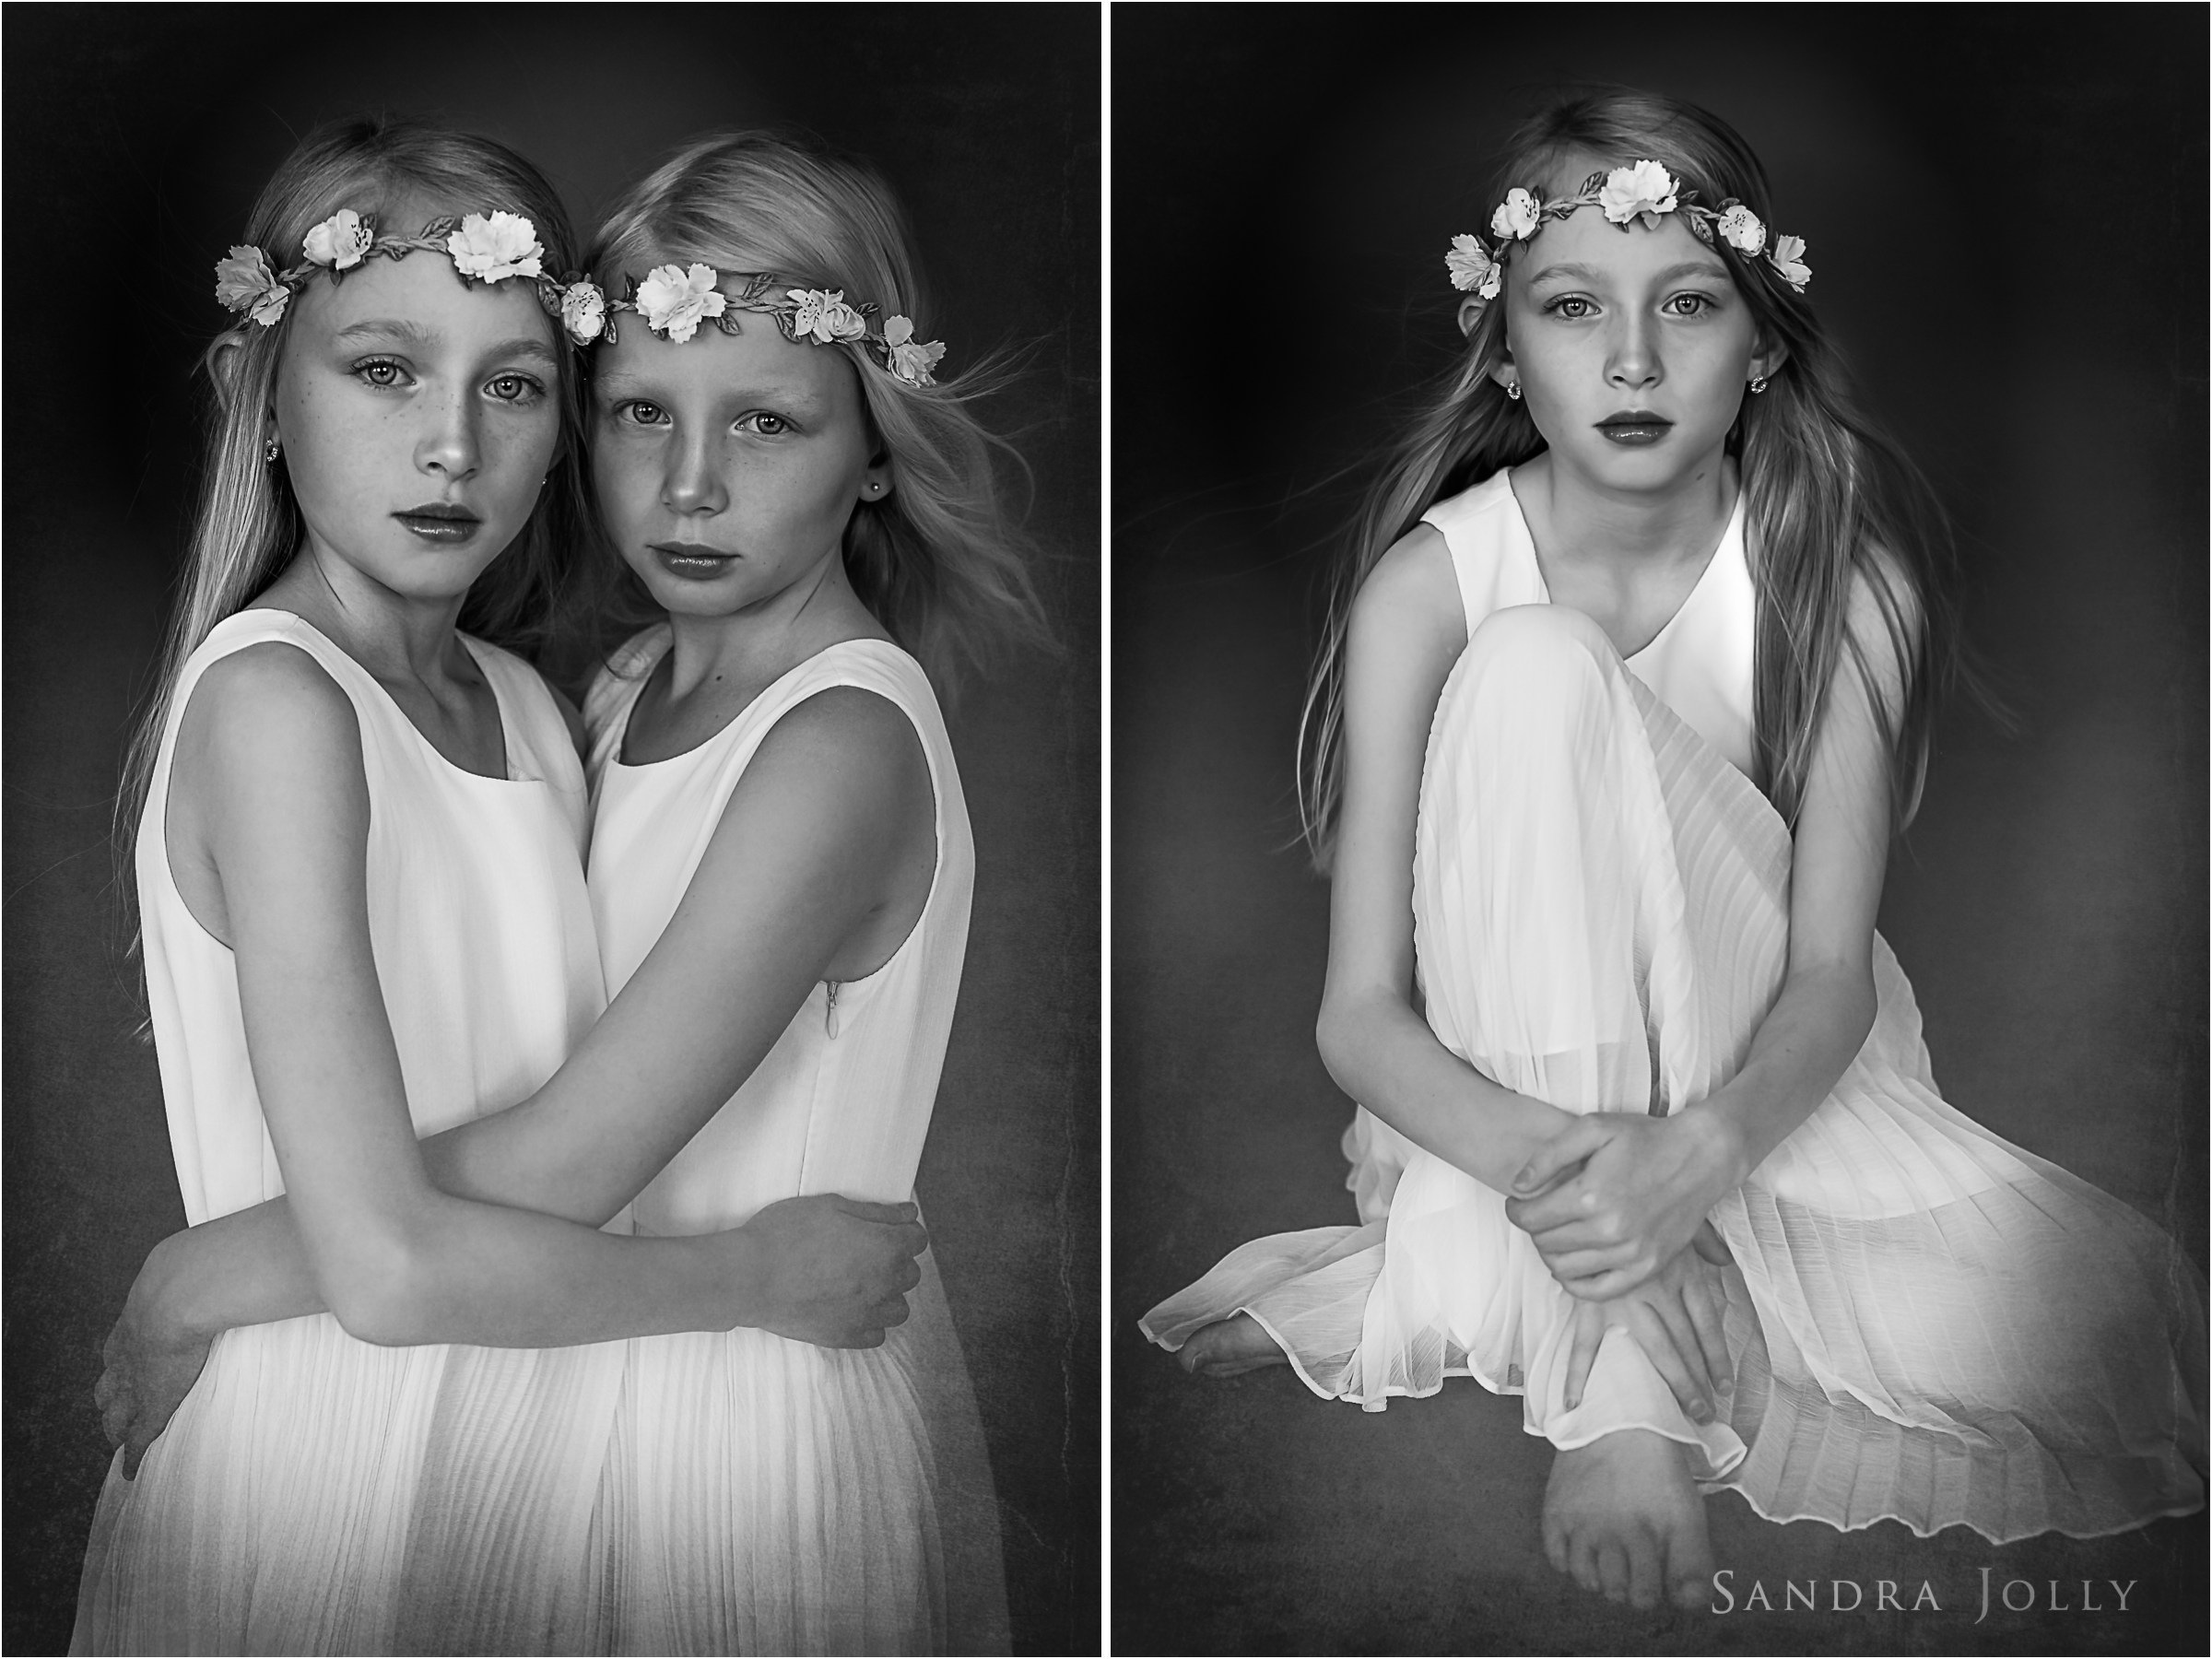 Studio_portraits_by_Sollentuna_barnfotograf_Sandra Jolly Photography.jpg